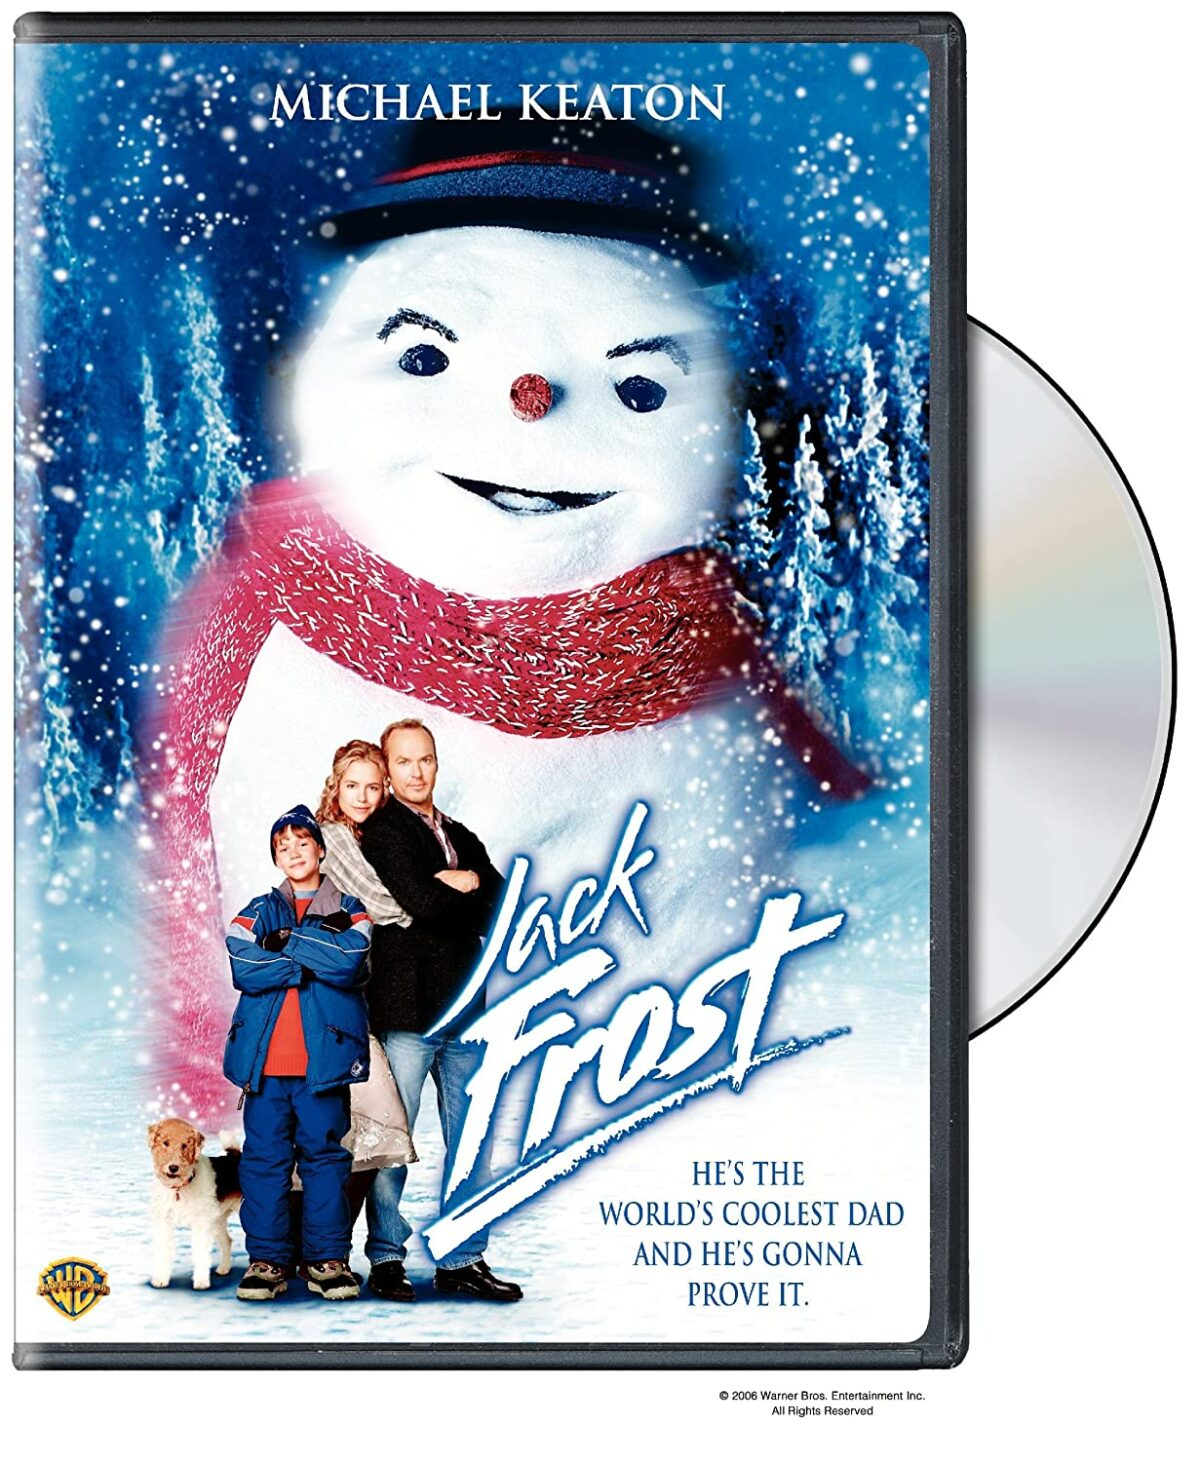 A good Christmas movie featuring a snowman and a family - sounds perfect! | The Dating Divas